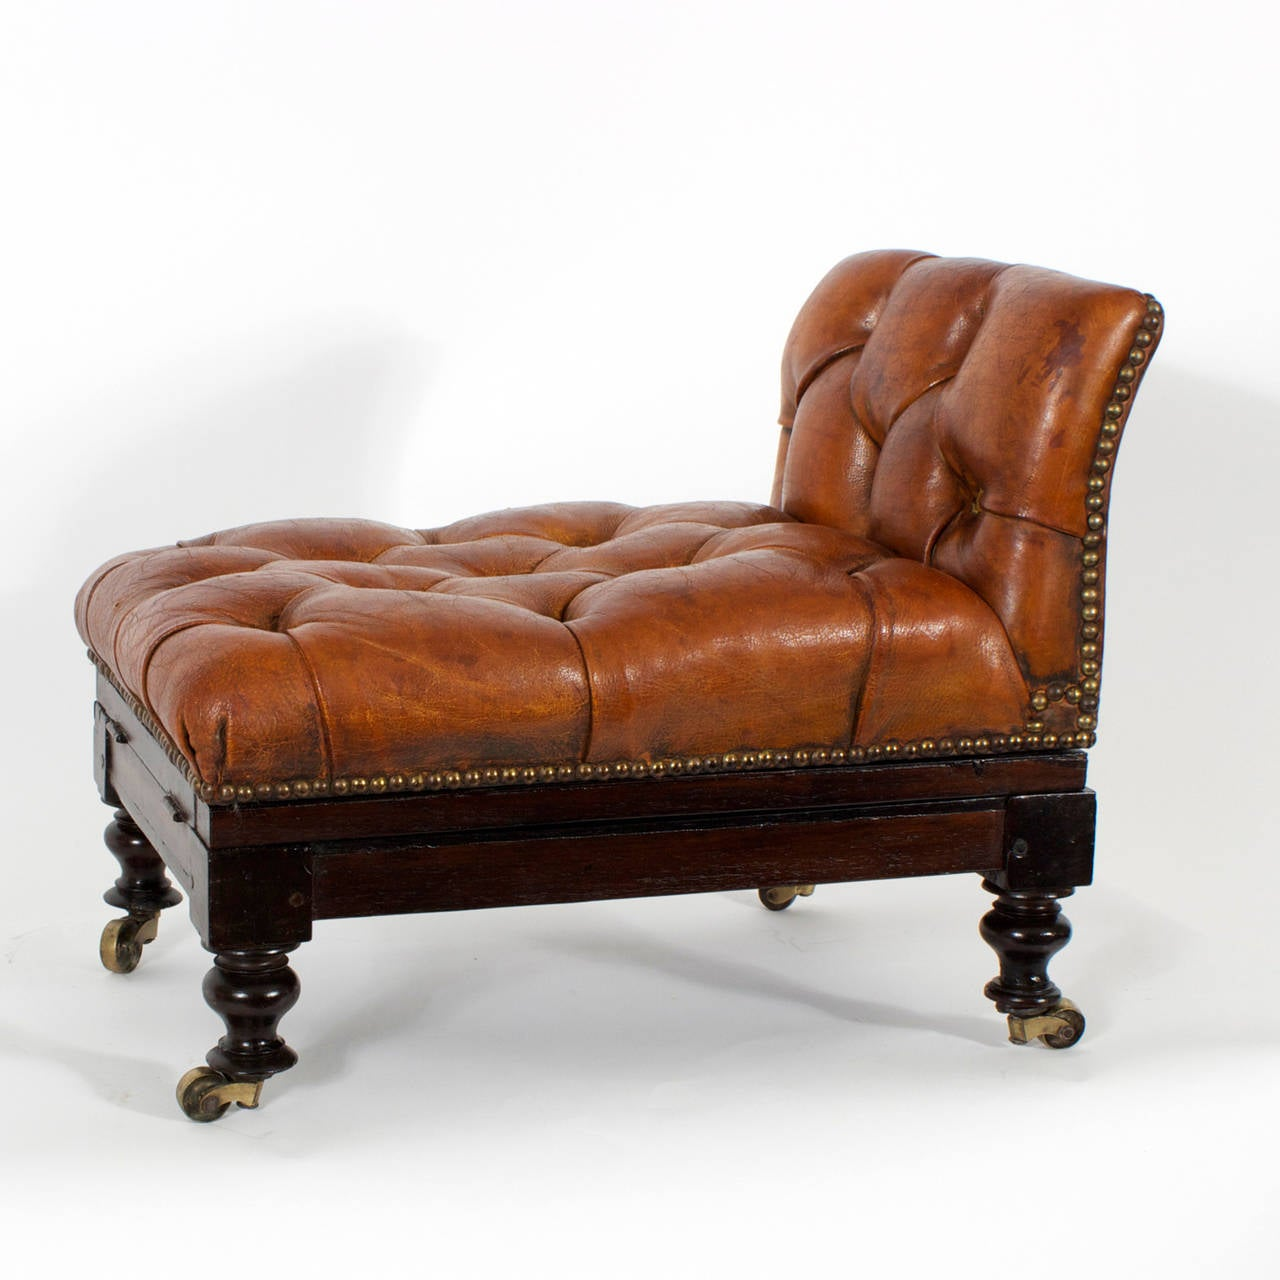 "Here is a fine, 19th century, brown leather, button tufted foot stool with mahogany frame and brass tacks over turned legs and brass wheels. Having the added feature of adjustable angles, of raising 6"", in increments for ultimate comfort."